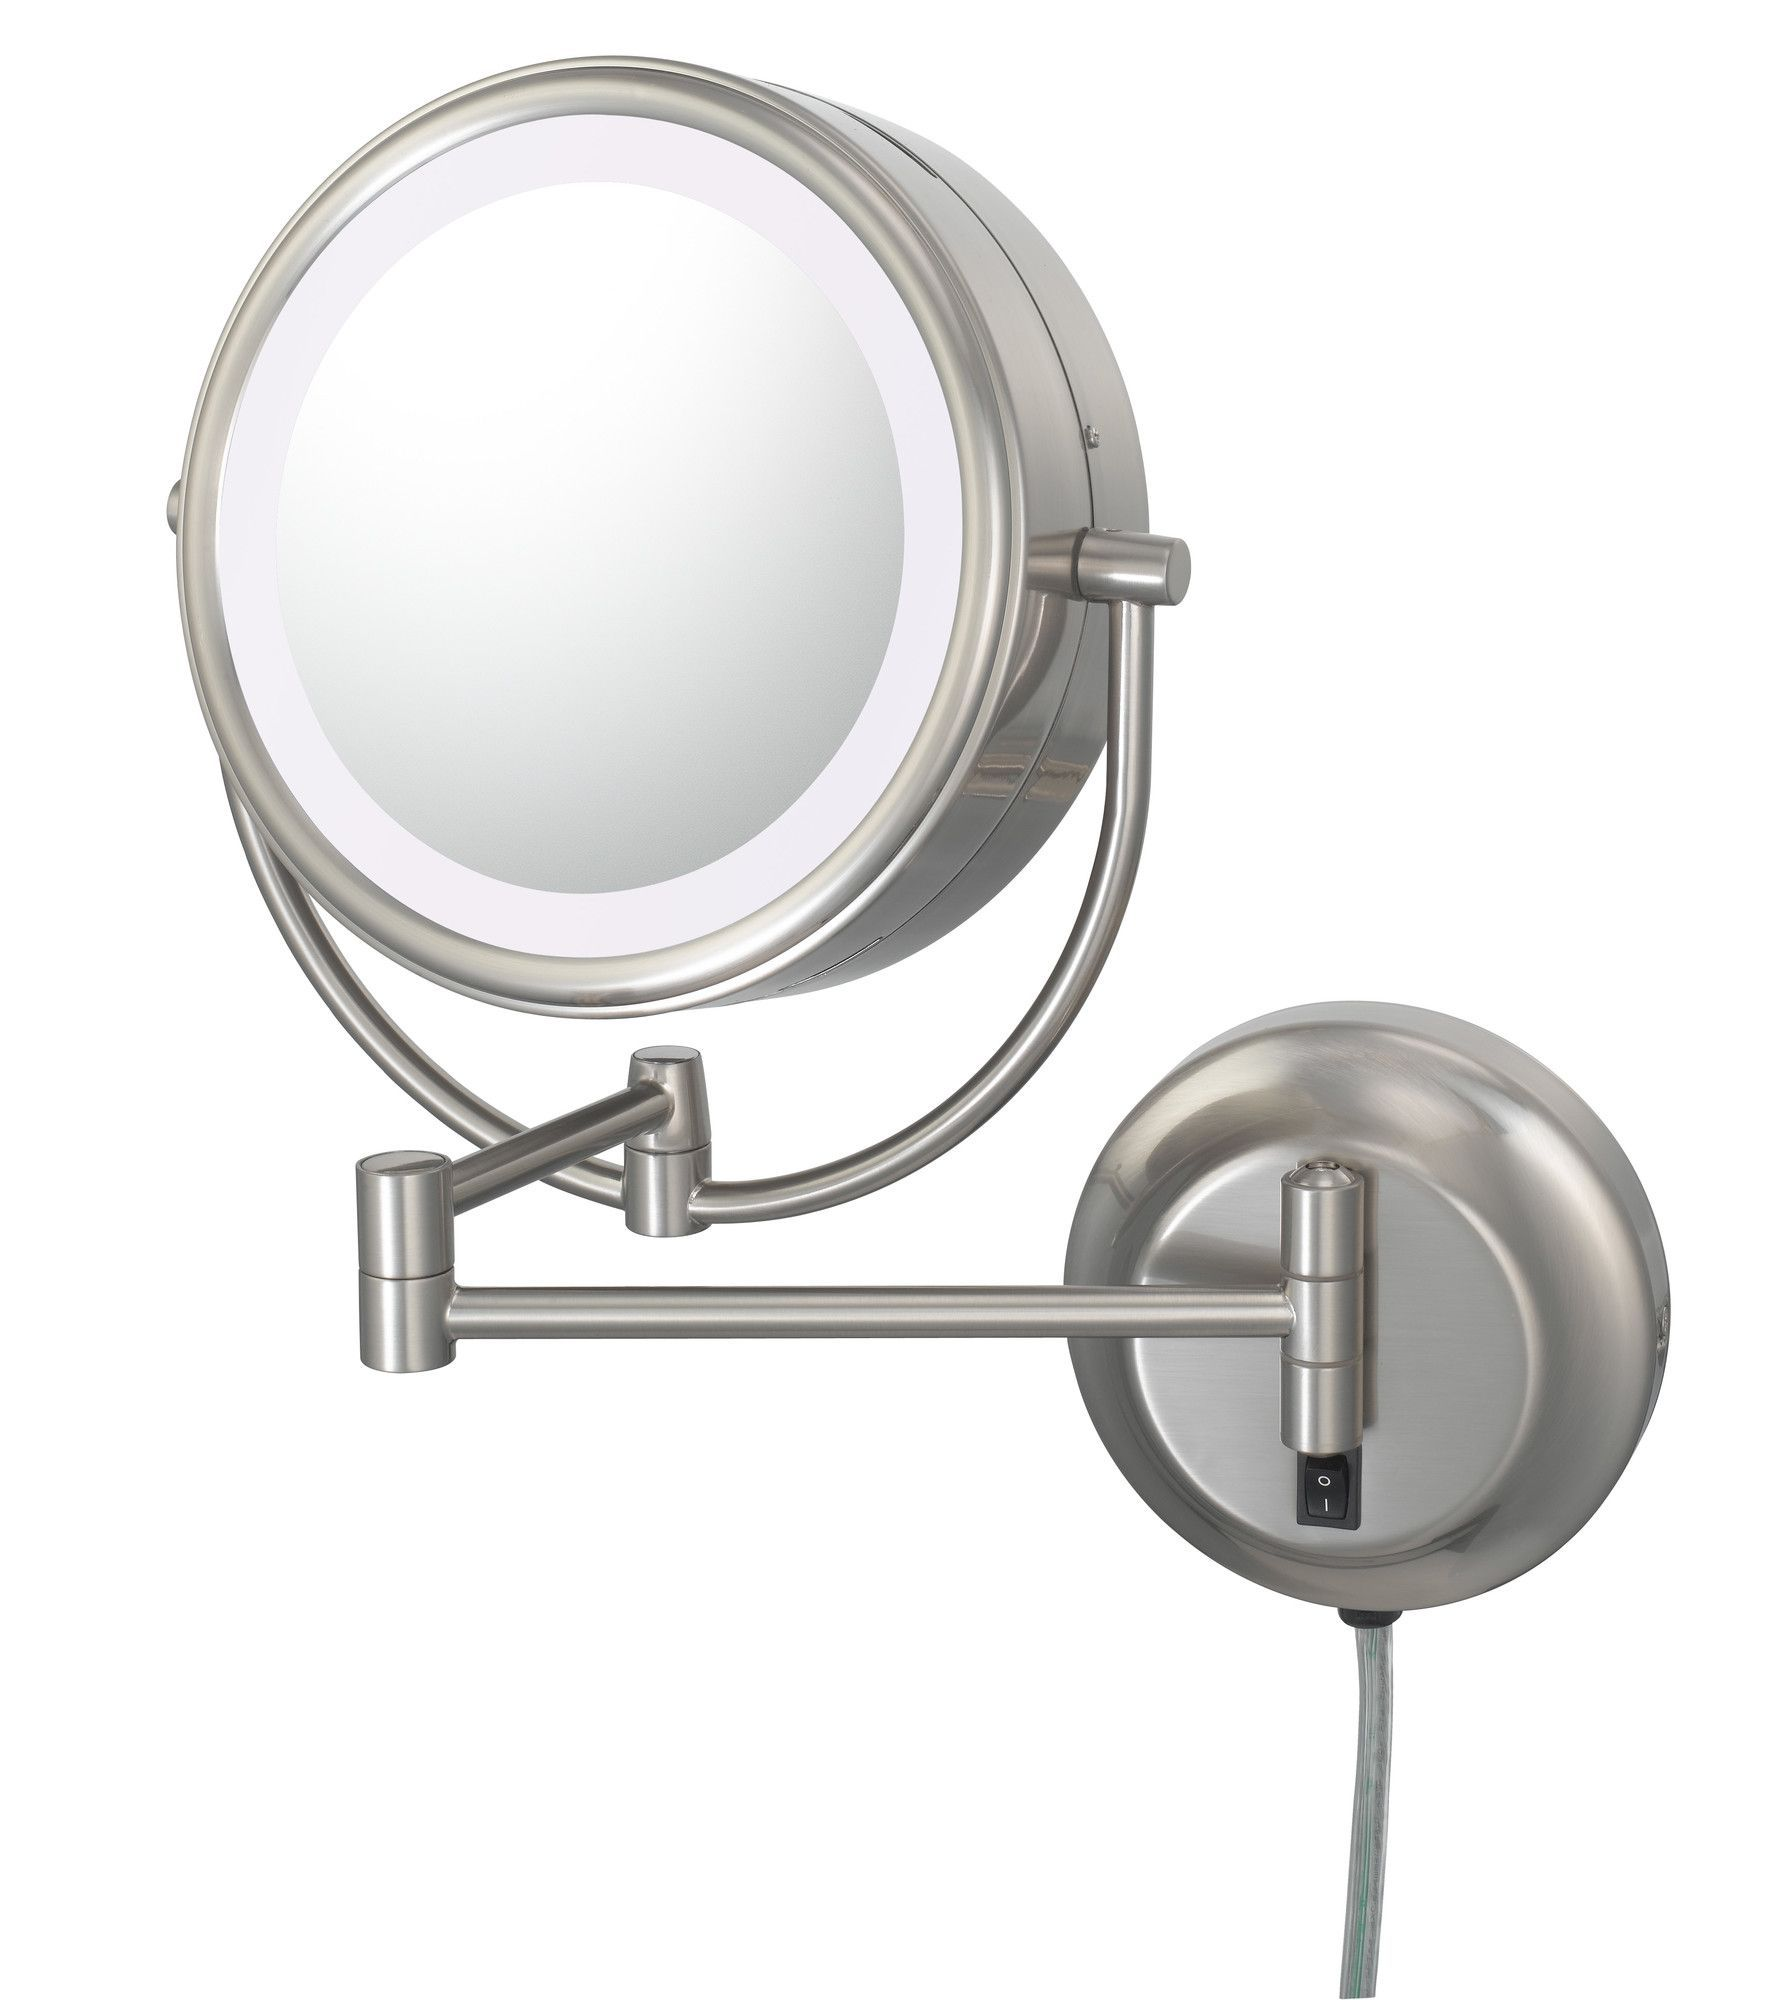 Kimball Young Neomodern Led Lighted Plug In Wall Mirror Makeup Mirror With Lights Magnifying Mirror Lighted Wall Mirror